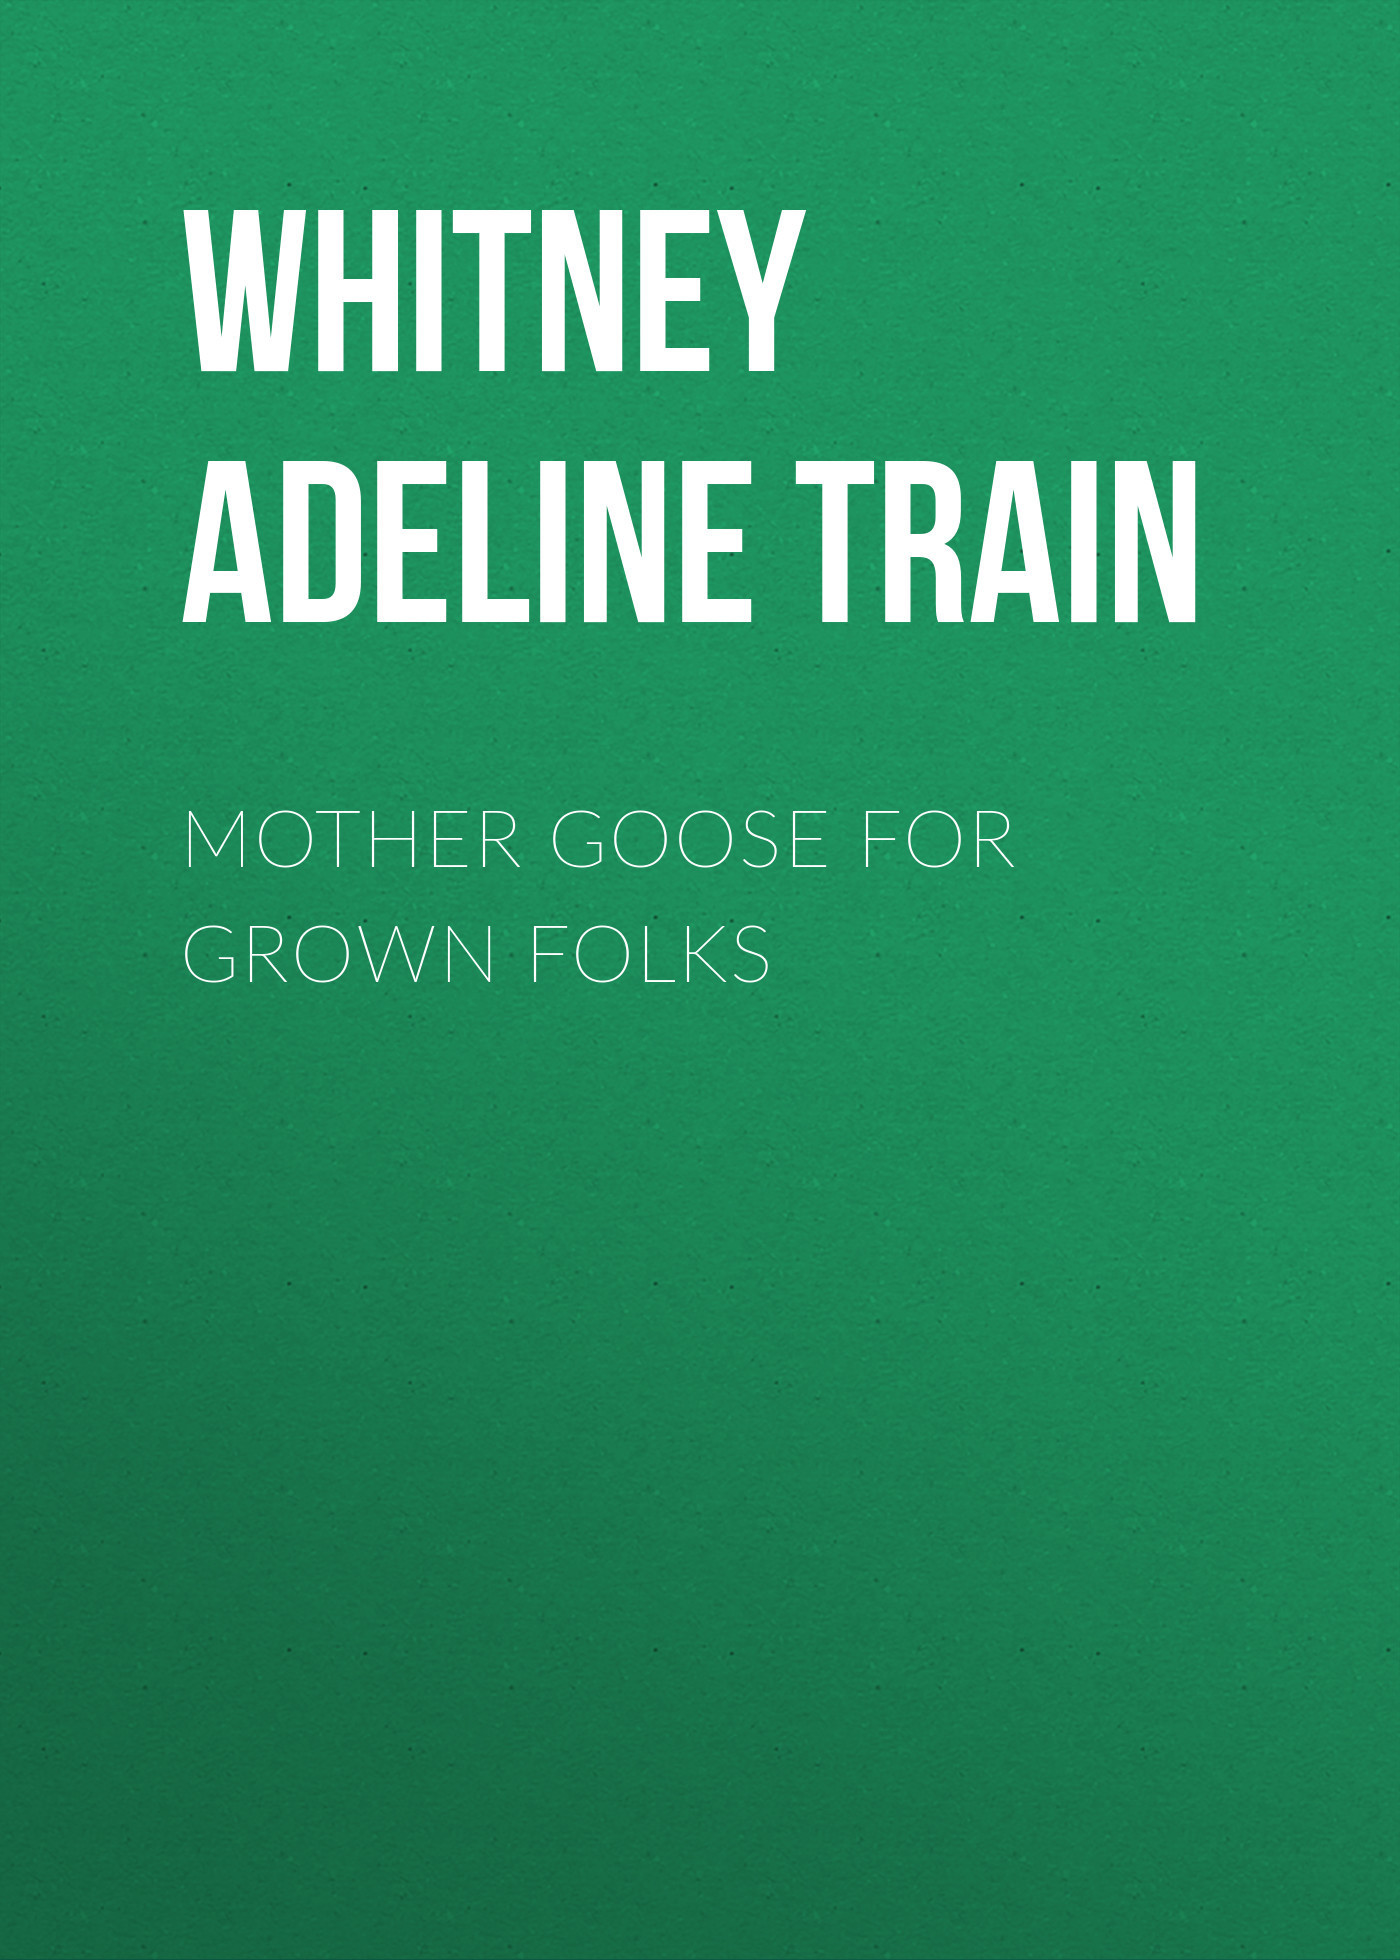 Whitney Adeline Dutton Train Mother Goose for Grown Folks mother goose rhymes